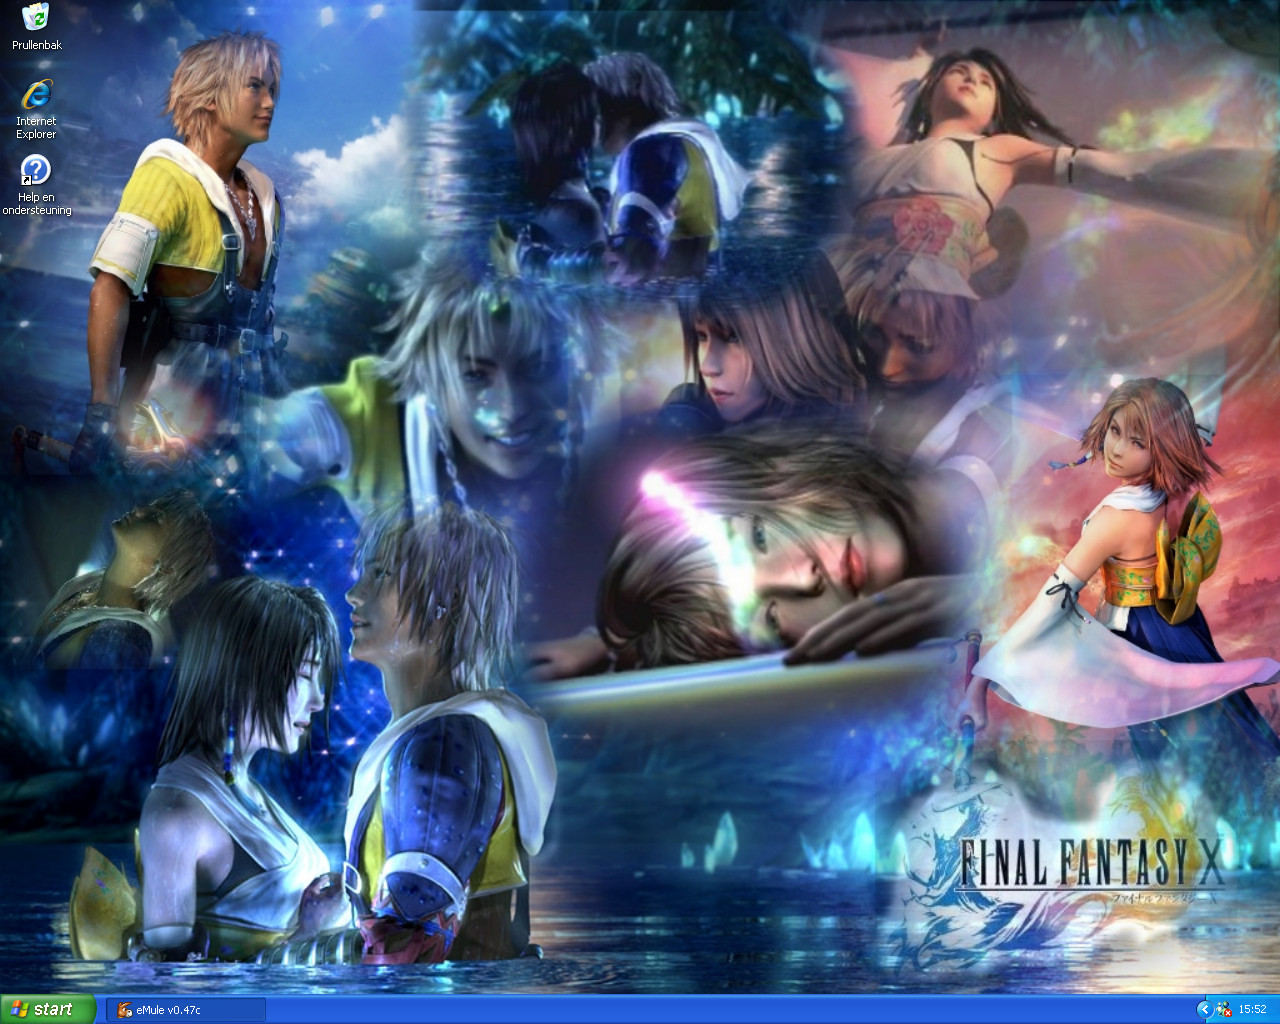 final fantasy wallpaper Final Fantasy Backgrounds 1280x1024